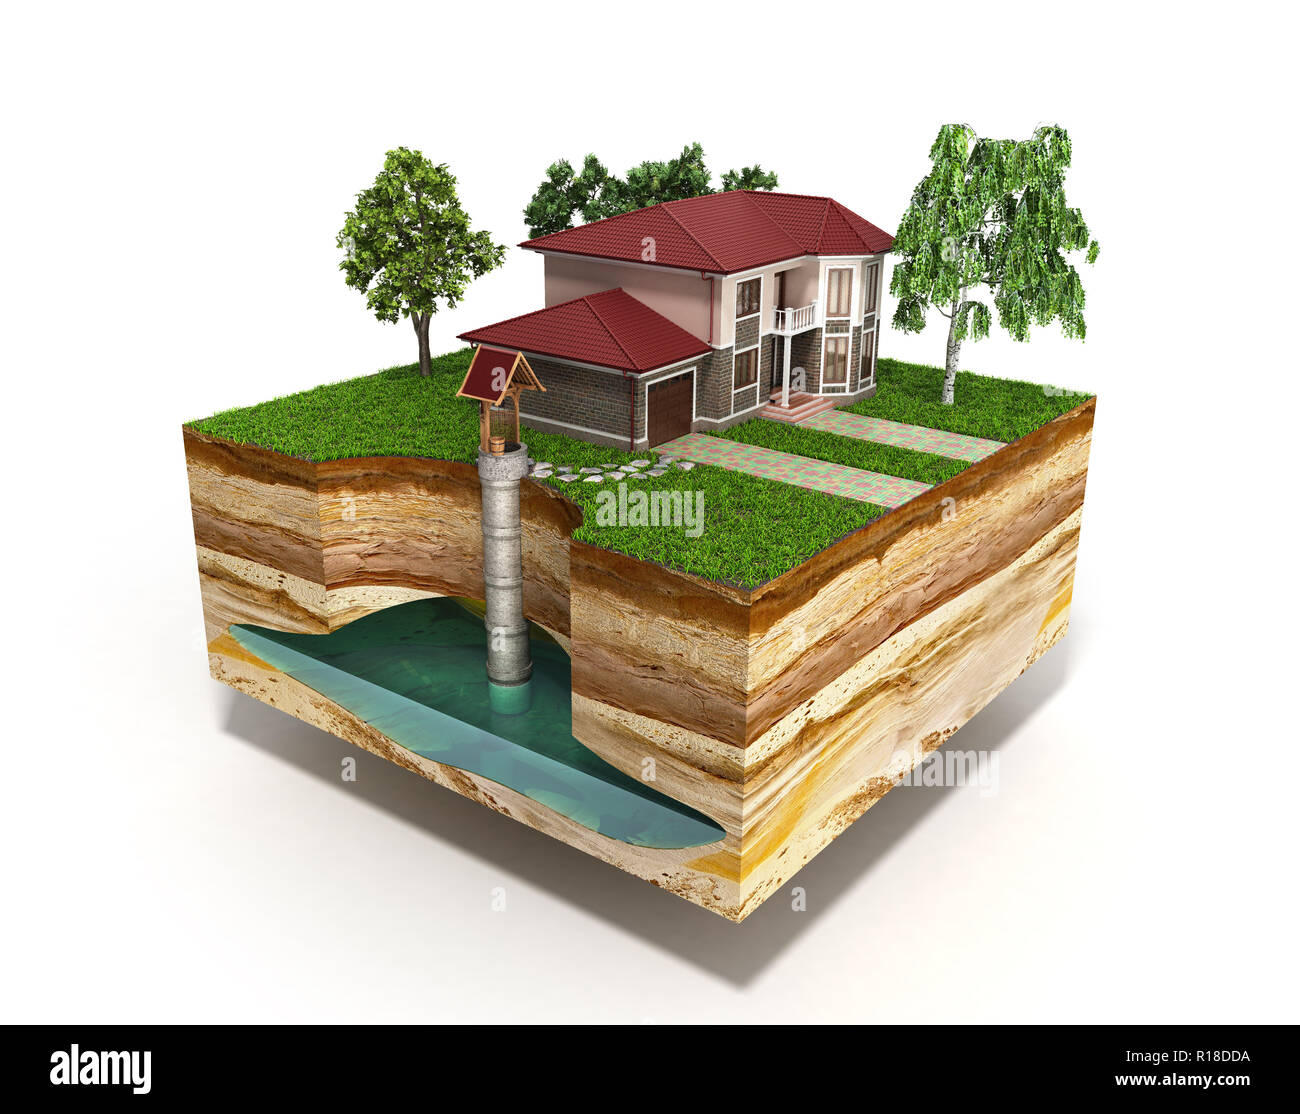 water well system The image depicts an underground aquifer 3d render on white - Stock Image